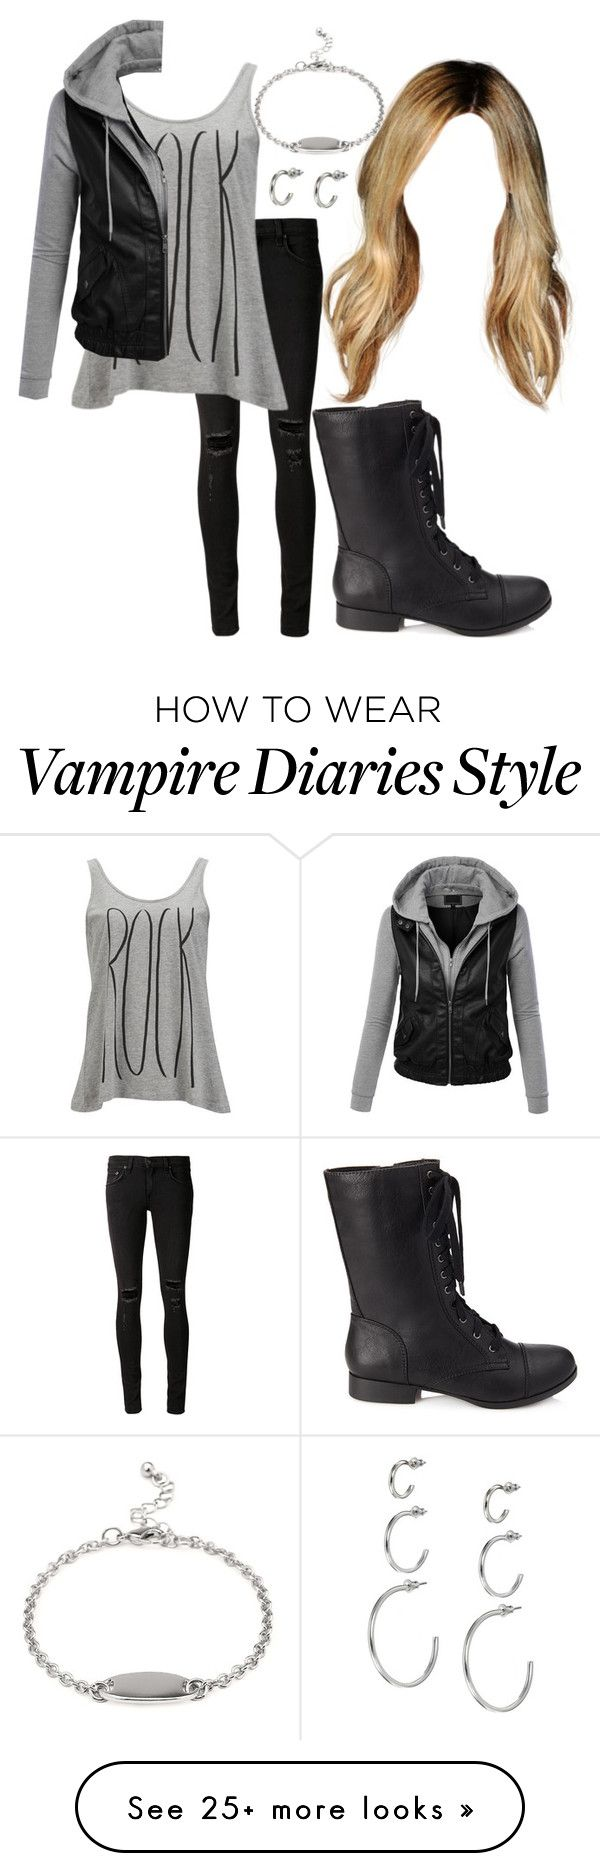 """The Vampire Diaries: Malia Gilbert [3x6]"" by grandmasfood on Polyvore featuring rag & bone/JEAN, Vero Moda, Forever 21, ASOS and LE3NO"